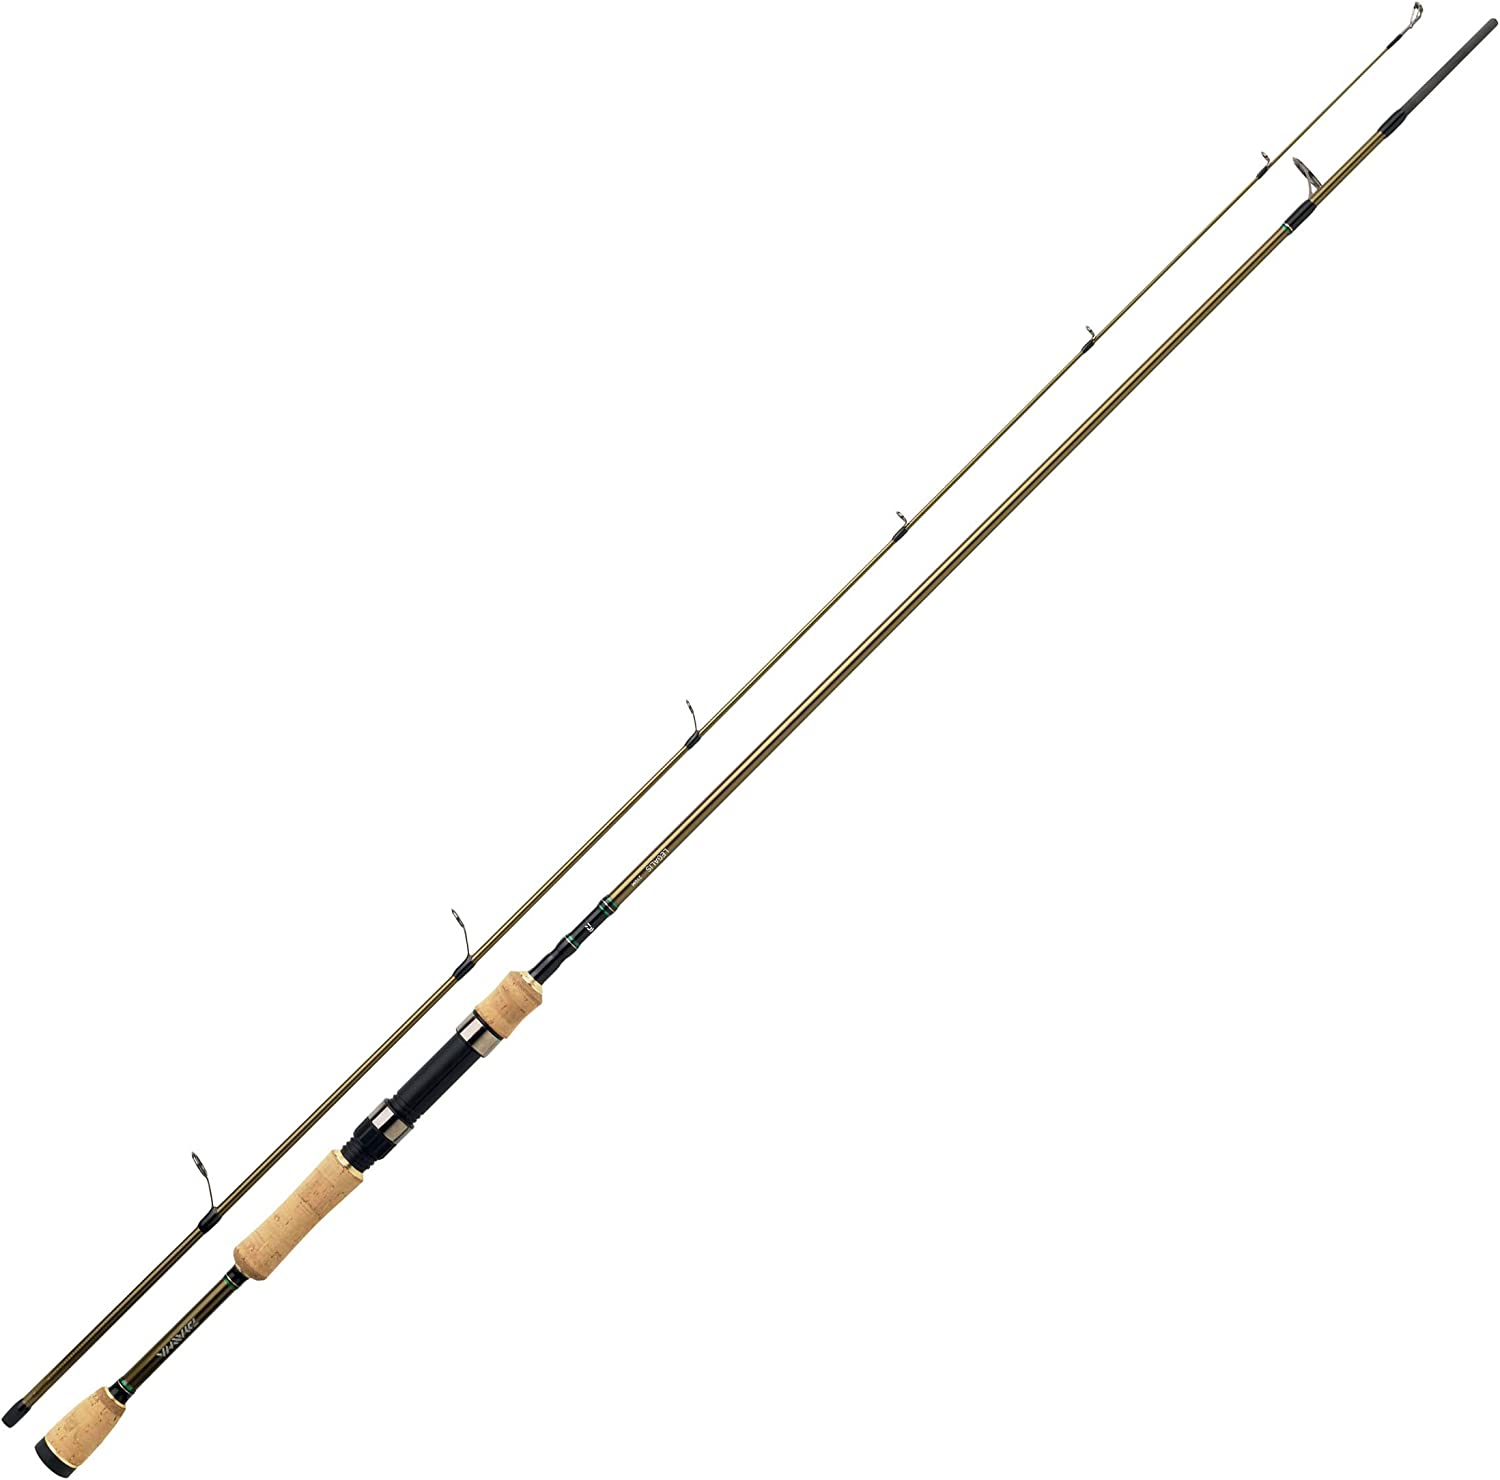 Daiwa CAÑA Spinning LEGALIS - 91, 180, 2, 7, 94, 2-8: Amazon.es ...